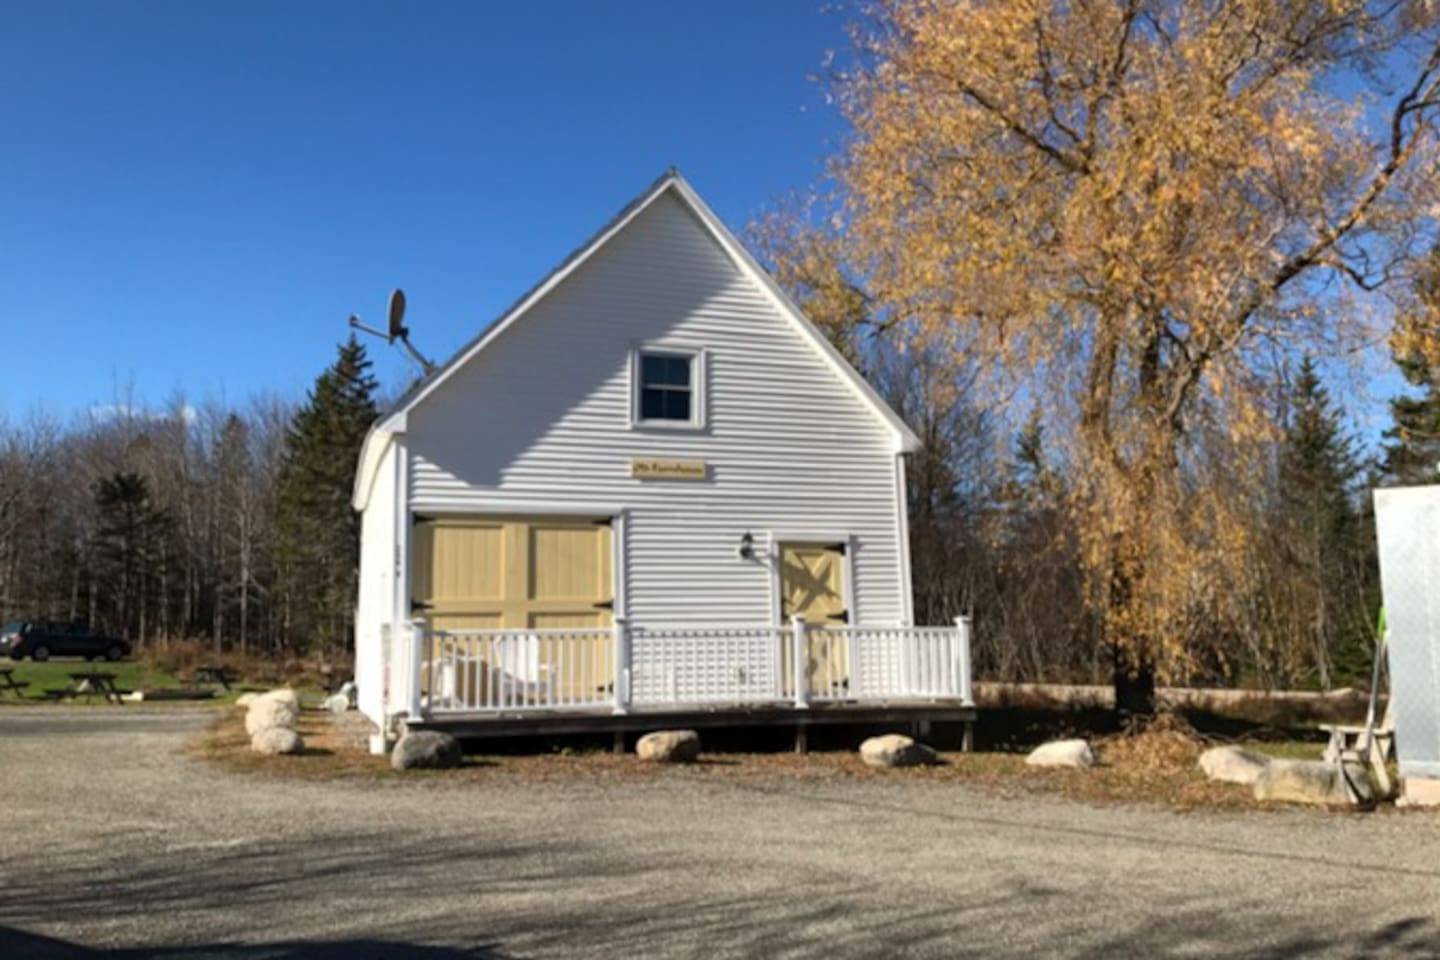 The Old Farmhouse Carriage House - deck with seating and access to the side yard with additional seating area.